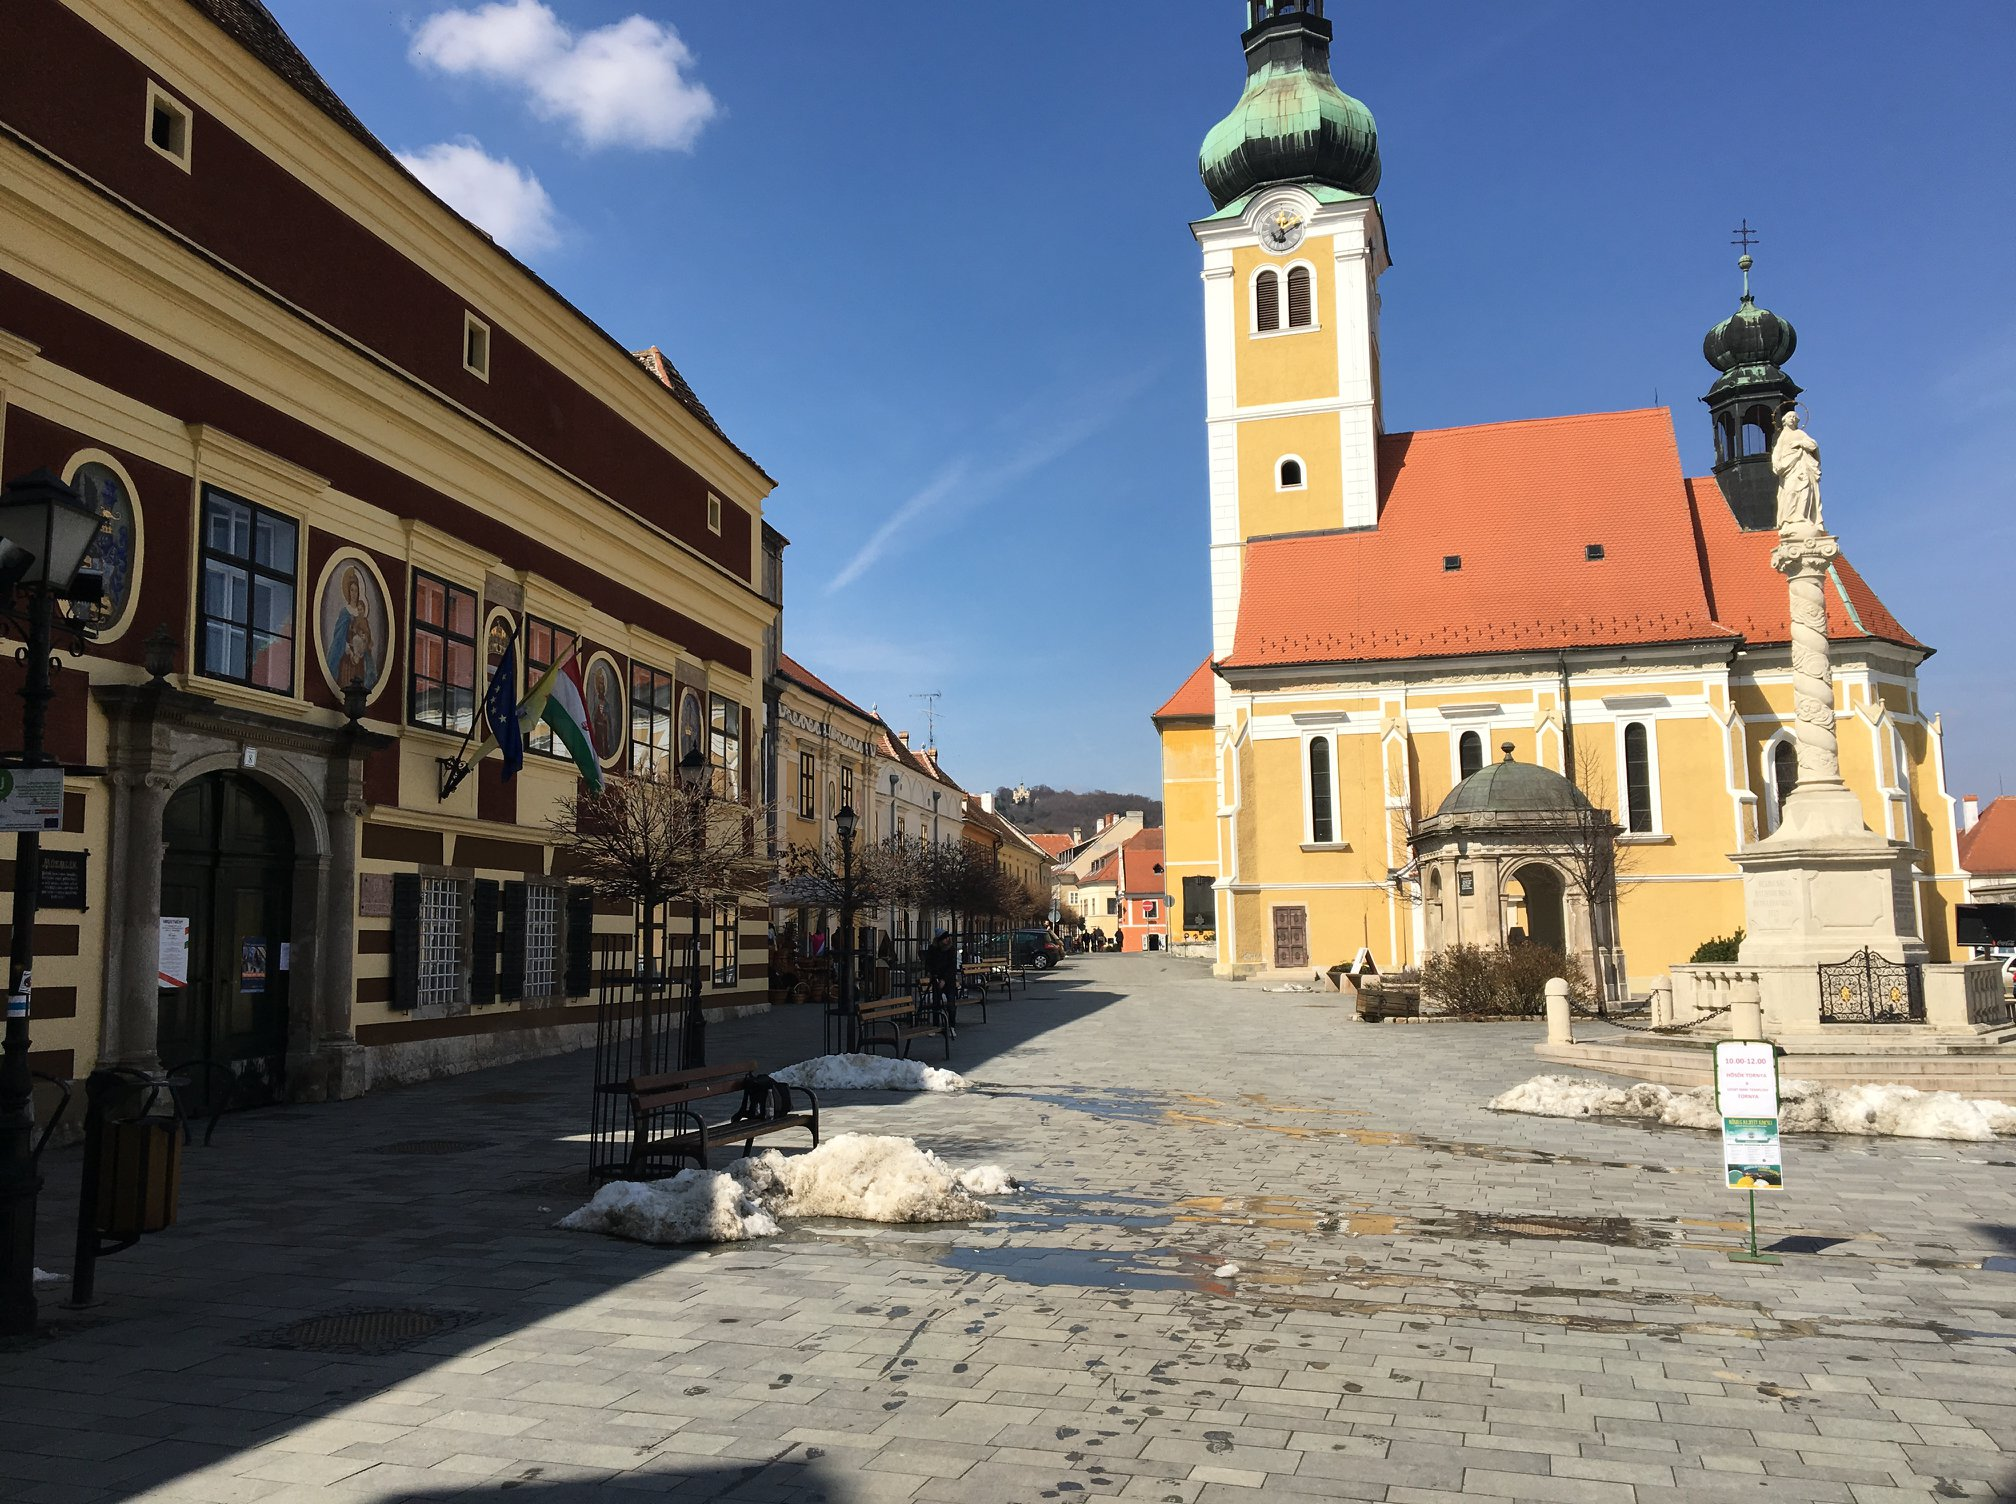 Koszeg is an attractive historic town near the Austrian border